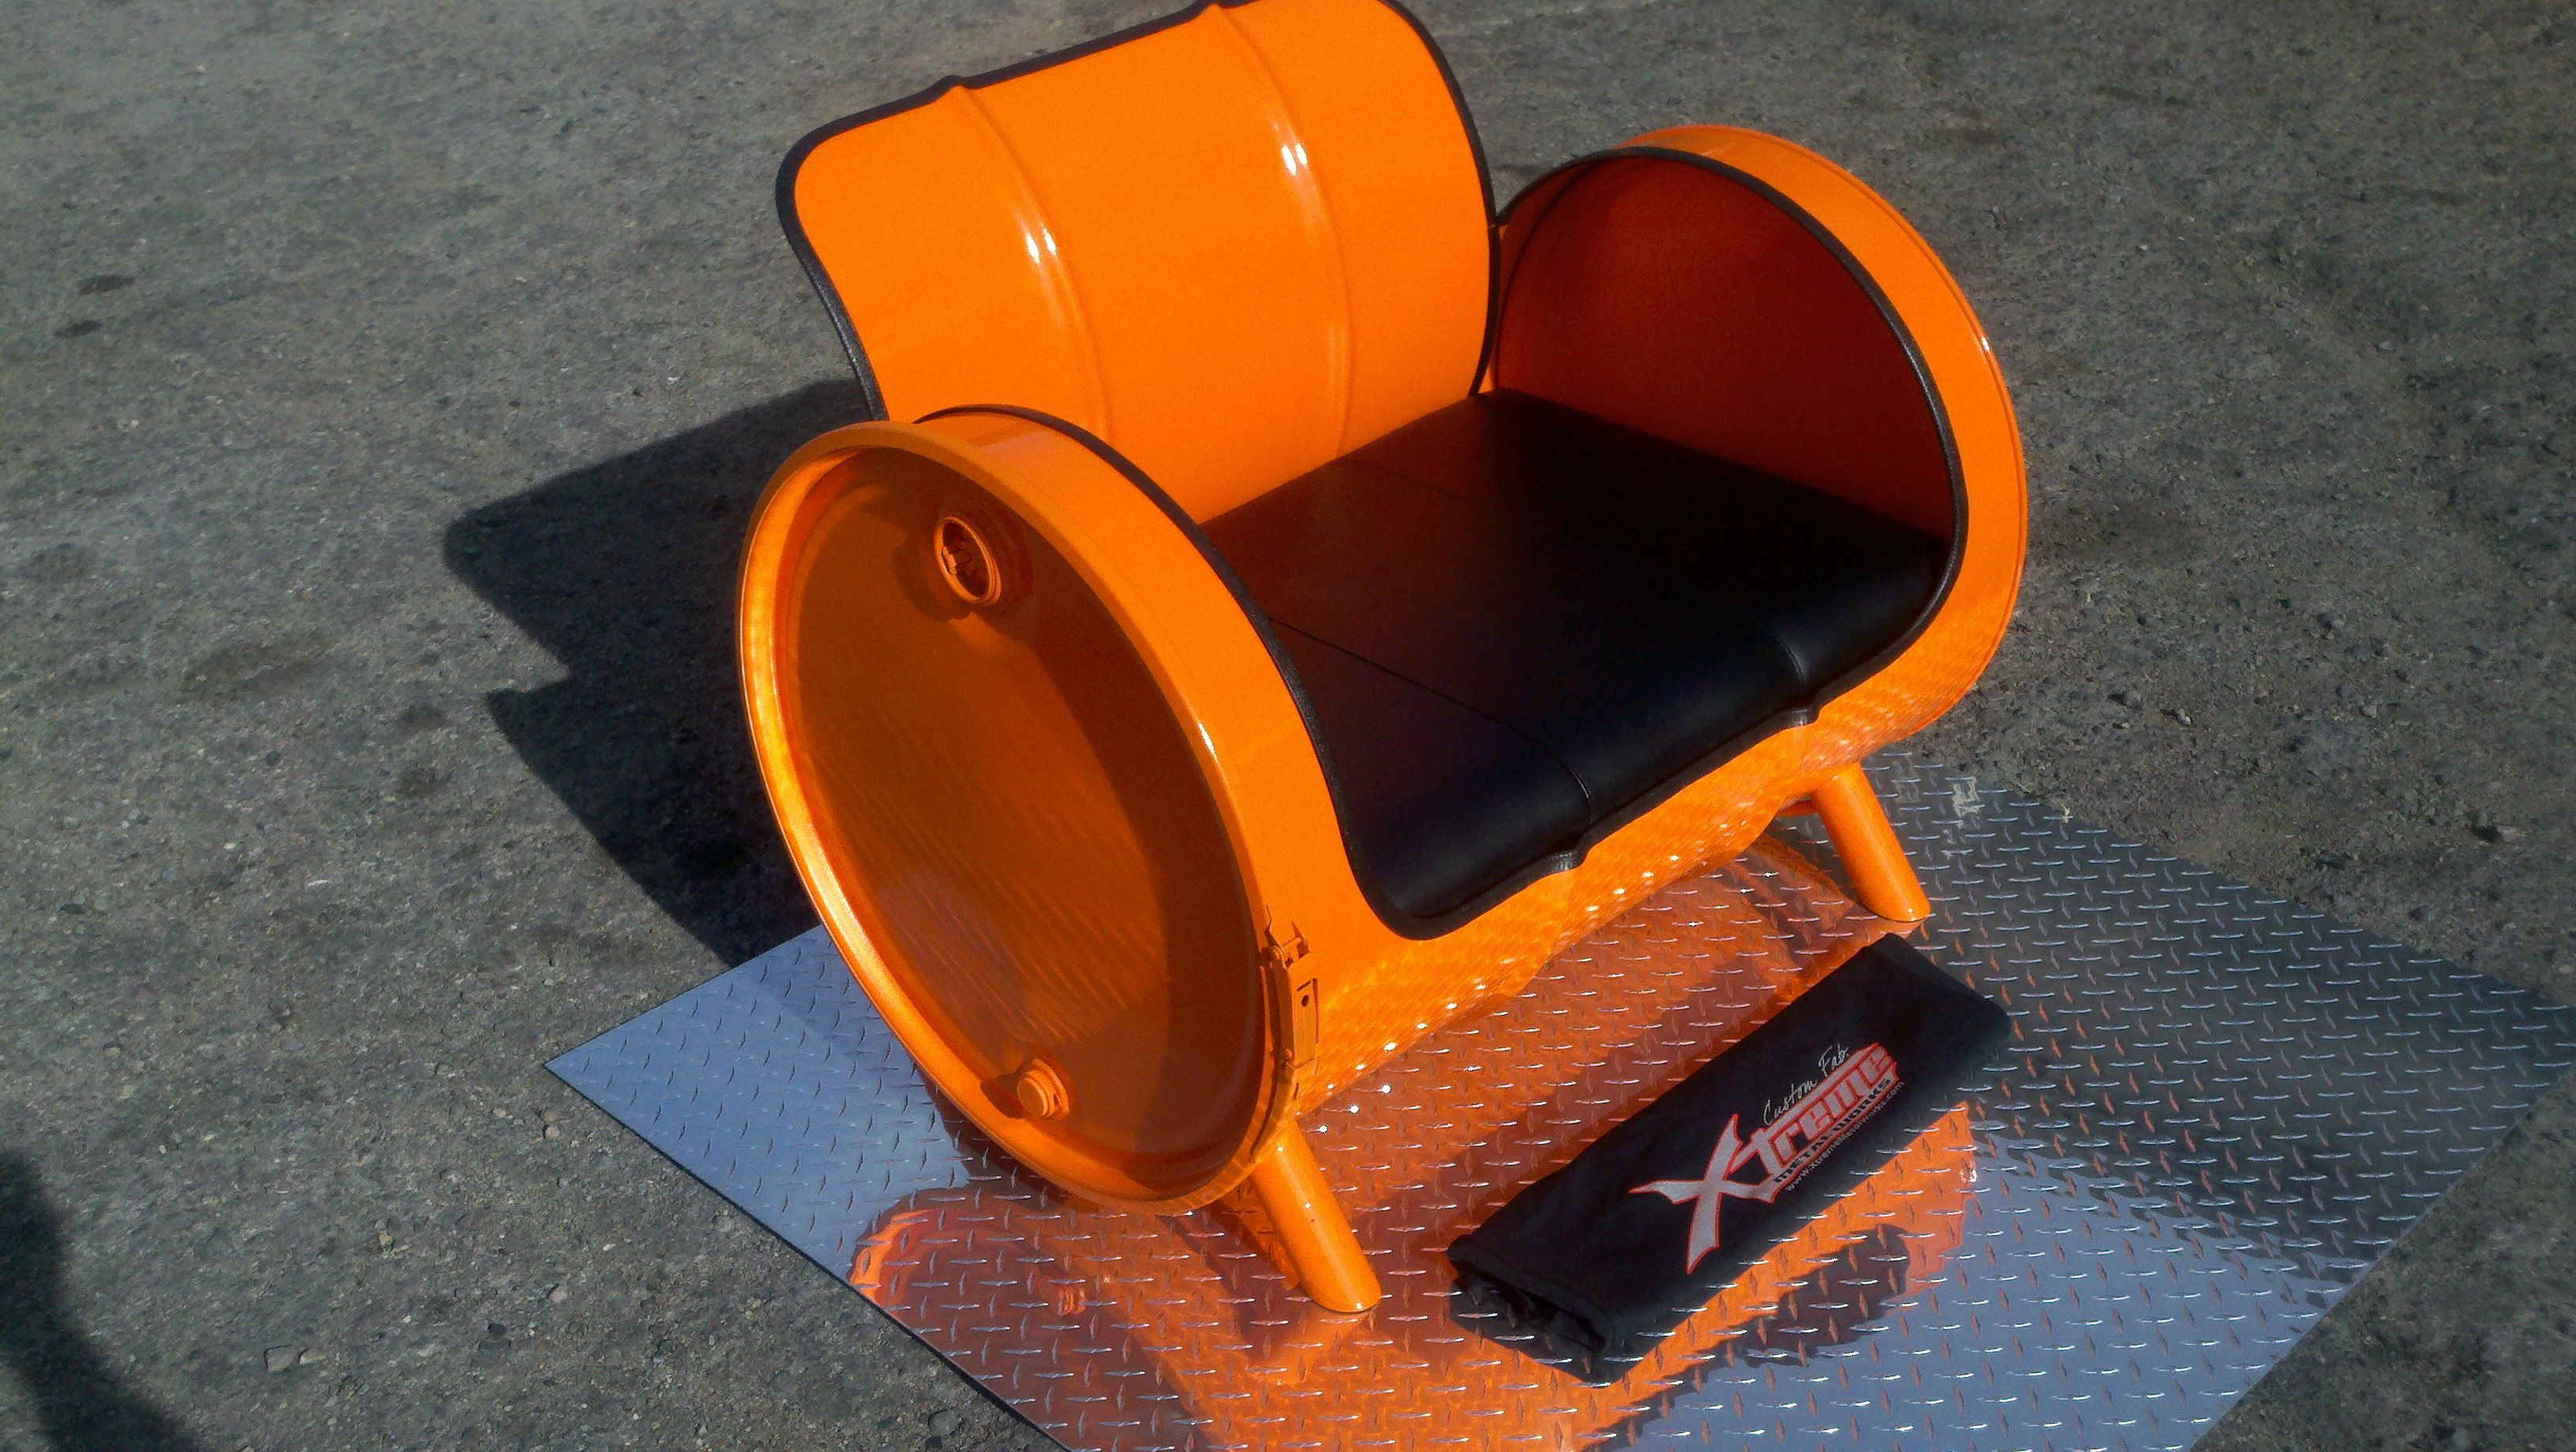 55 Gallon Drum Chair Powder Coated Leather Upholstery Built By Xtreme Metal  Works Drum Chair,